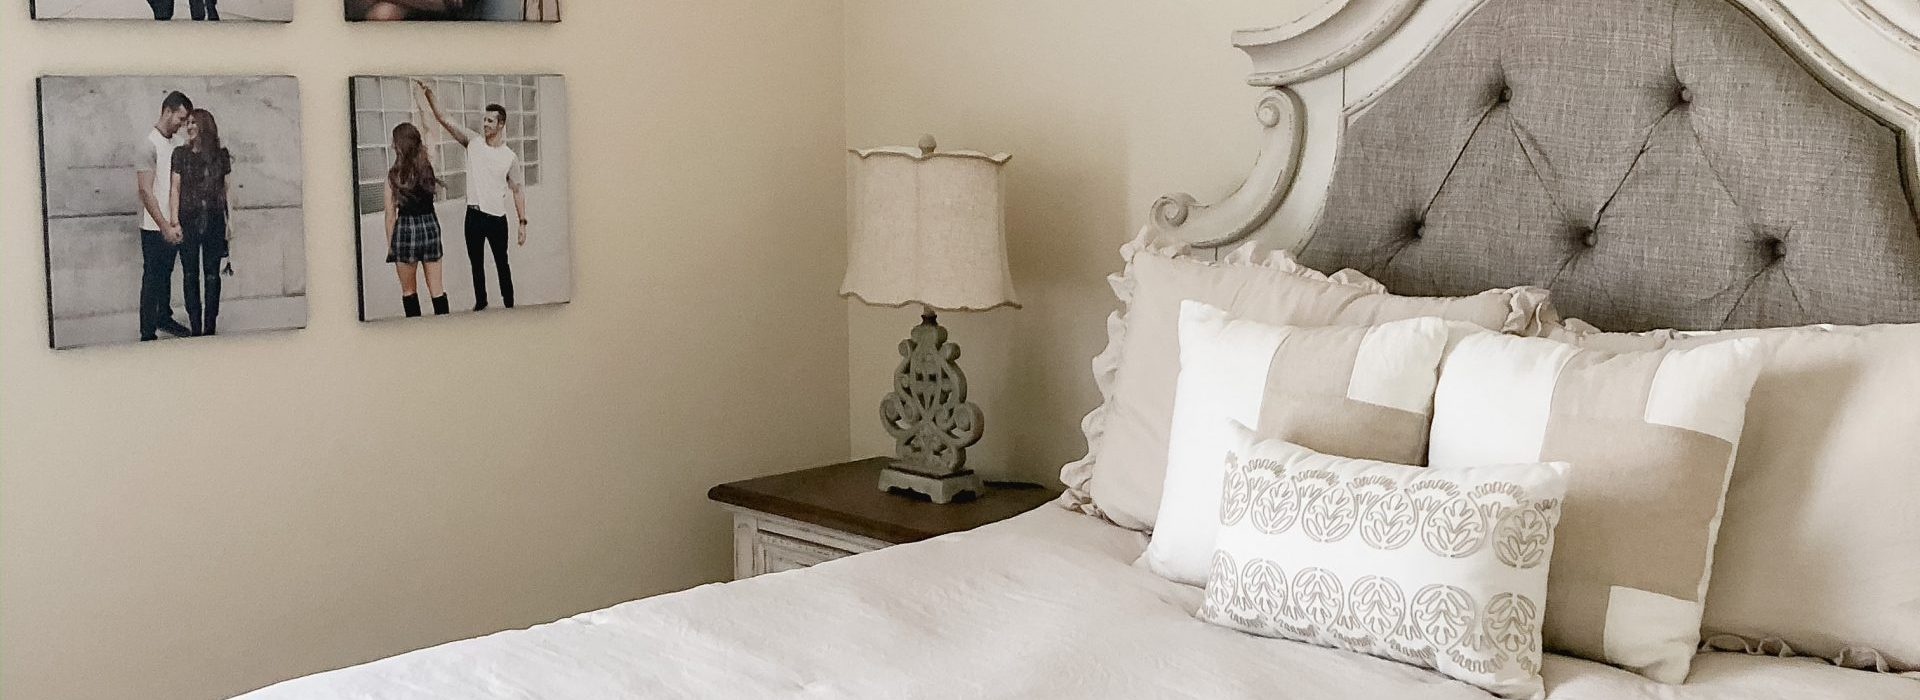 Home Reveal: Master Bedroom and Bath